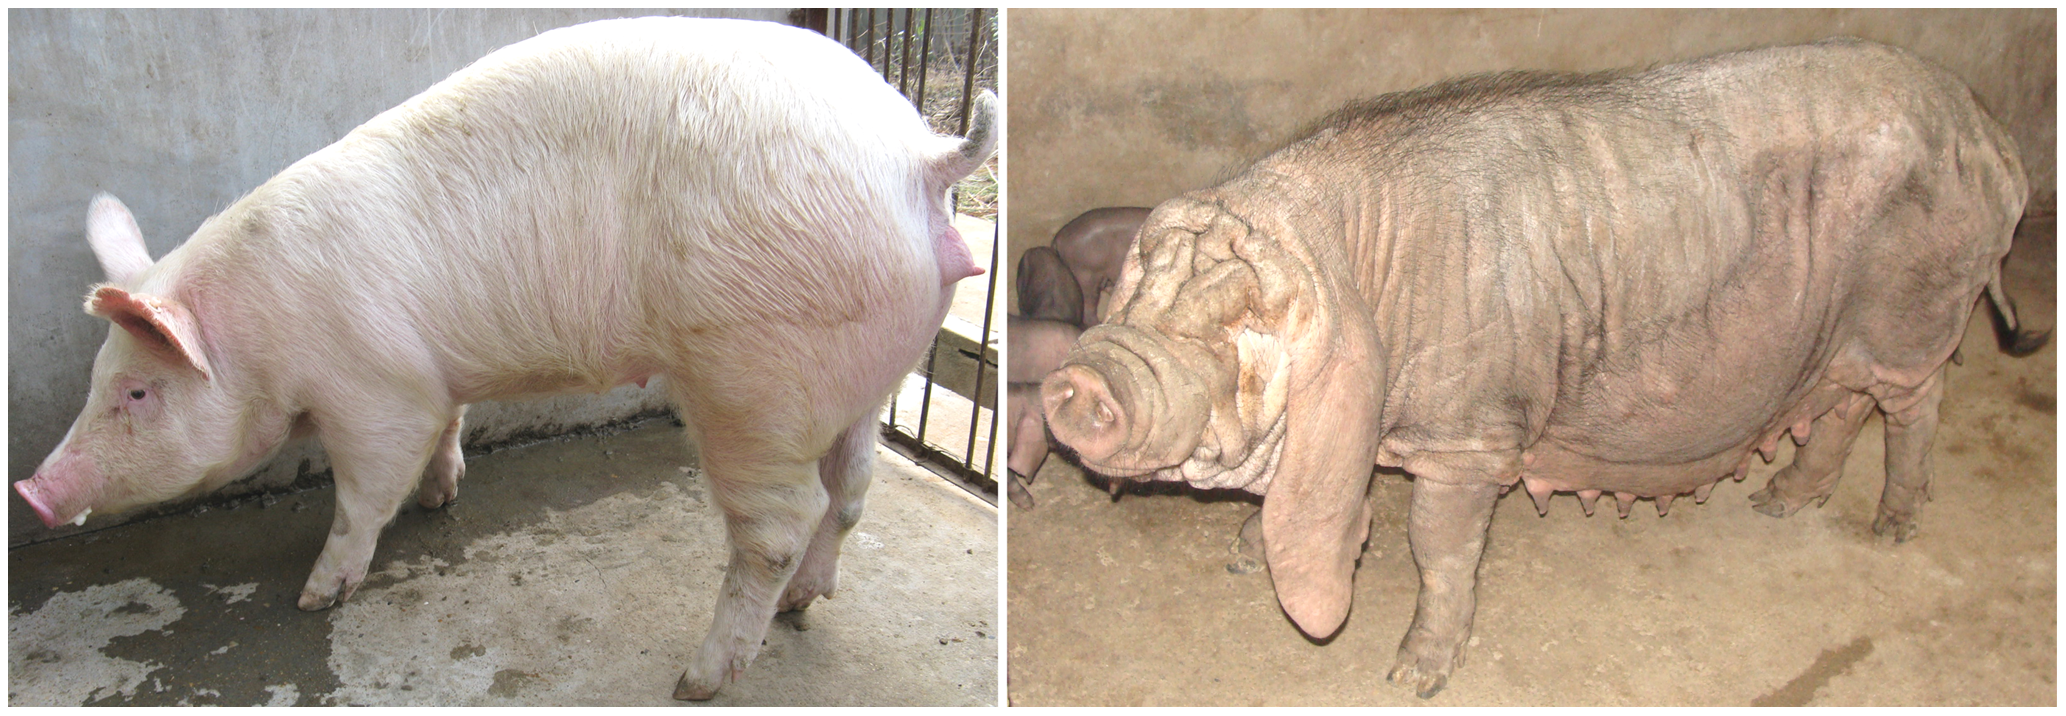 The Erhualian and White Duroc phenotypes.